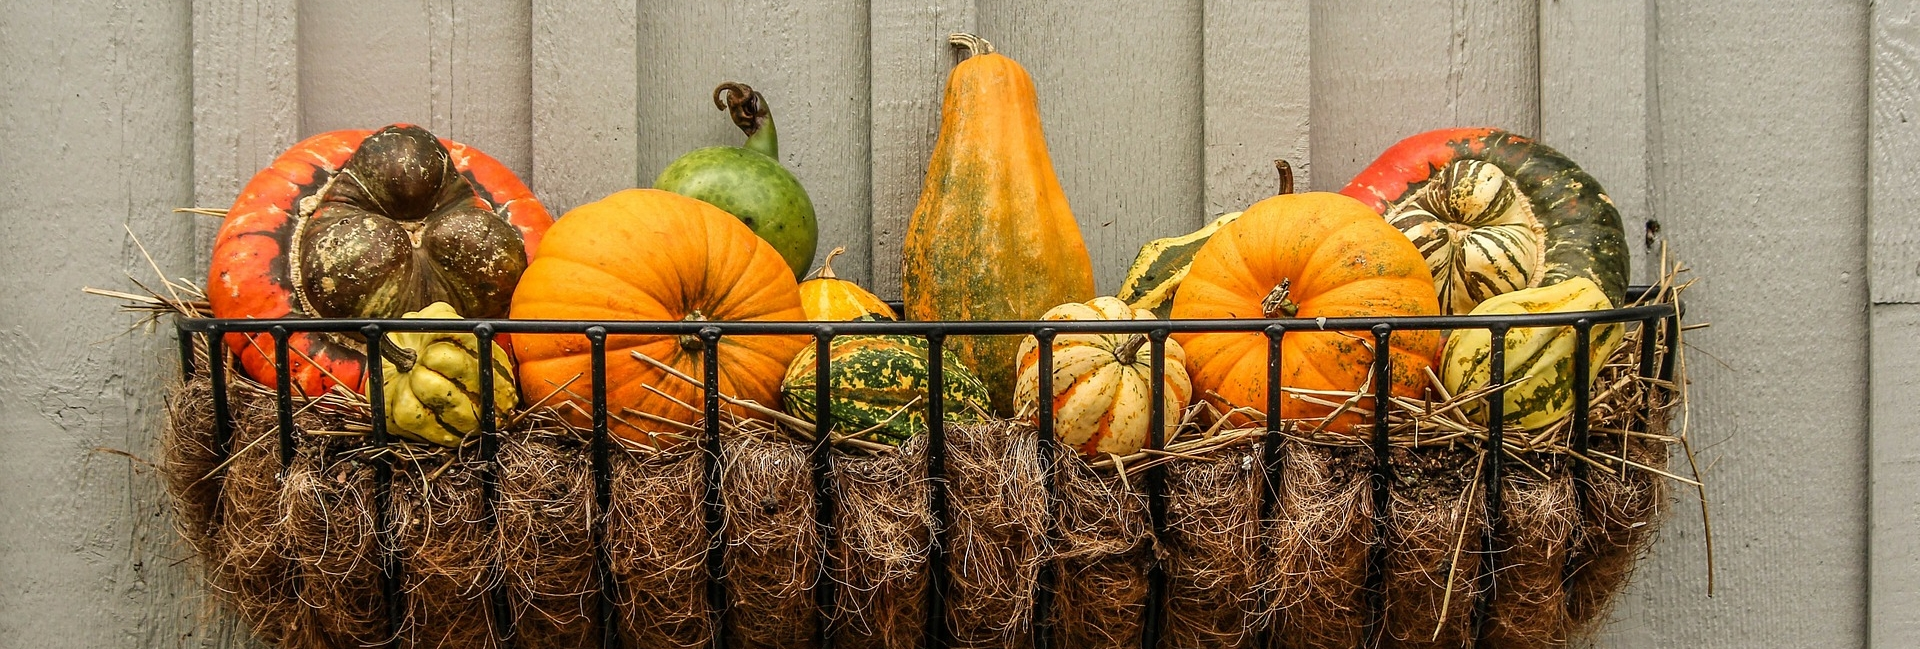 gourds 204929 1920 1920x649 - Tips to Get The Outside of Your Home Ready for Fall